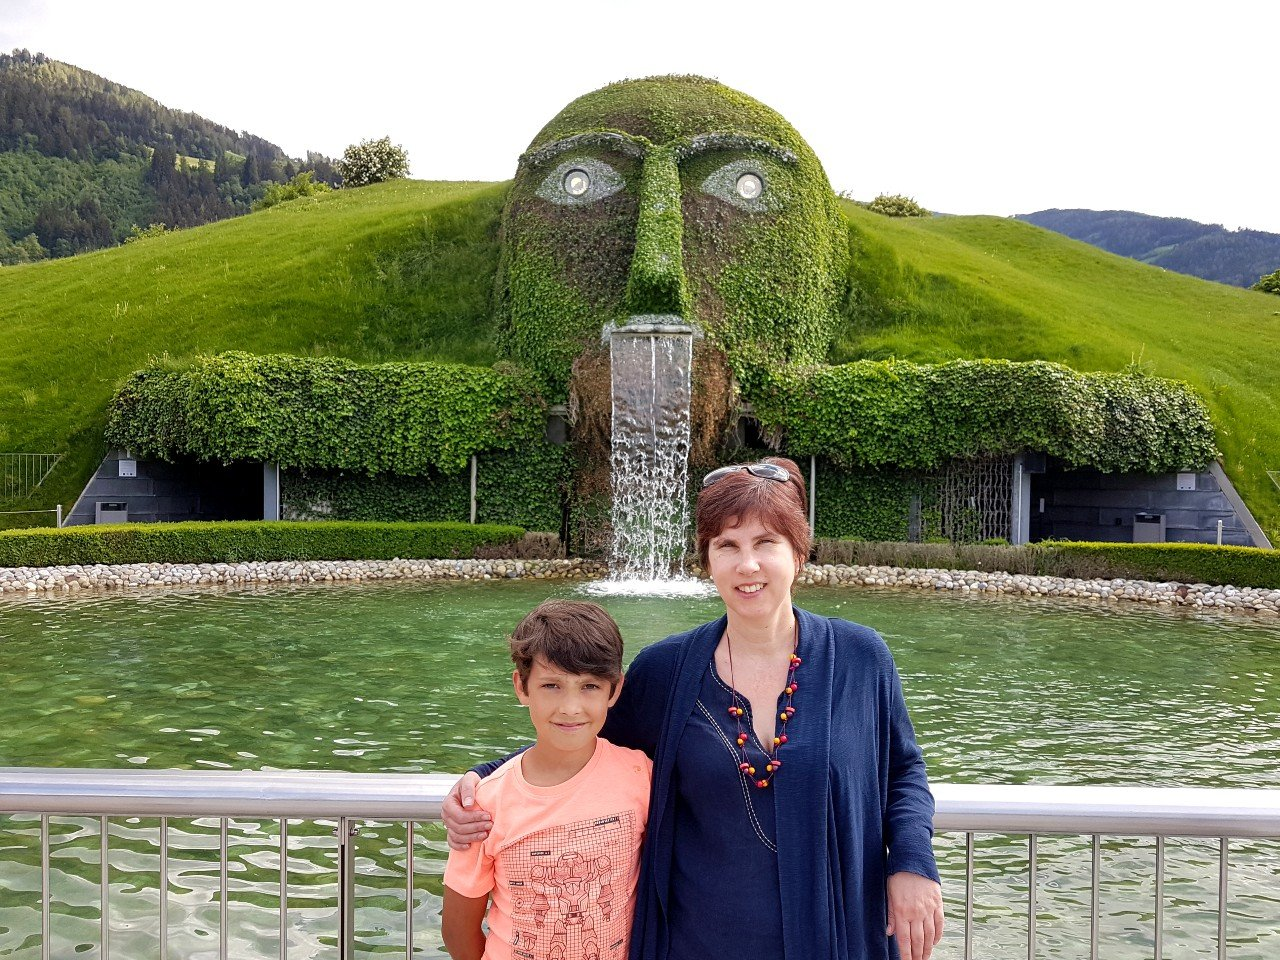 The Swarvoski Crystal Worlds is one of the top tourist attractions near Innsbruck in Austria.